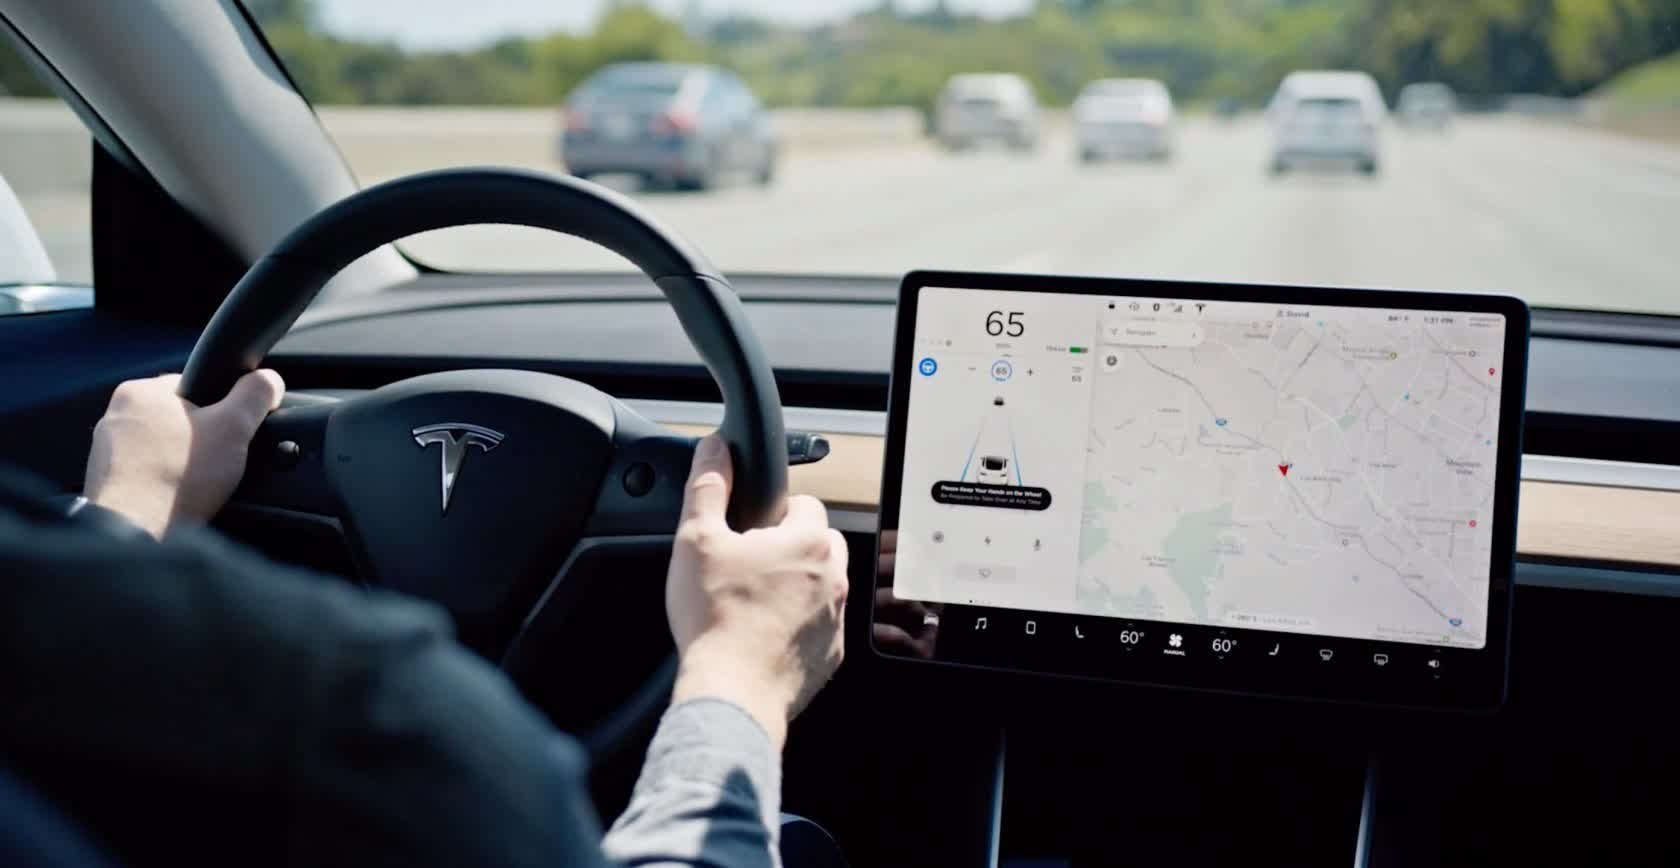 Tesla bumps up the price of its Full Self-Driving tech to $10,000